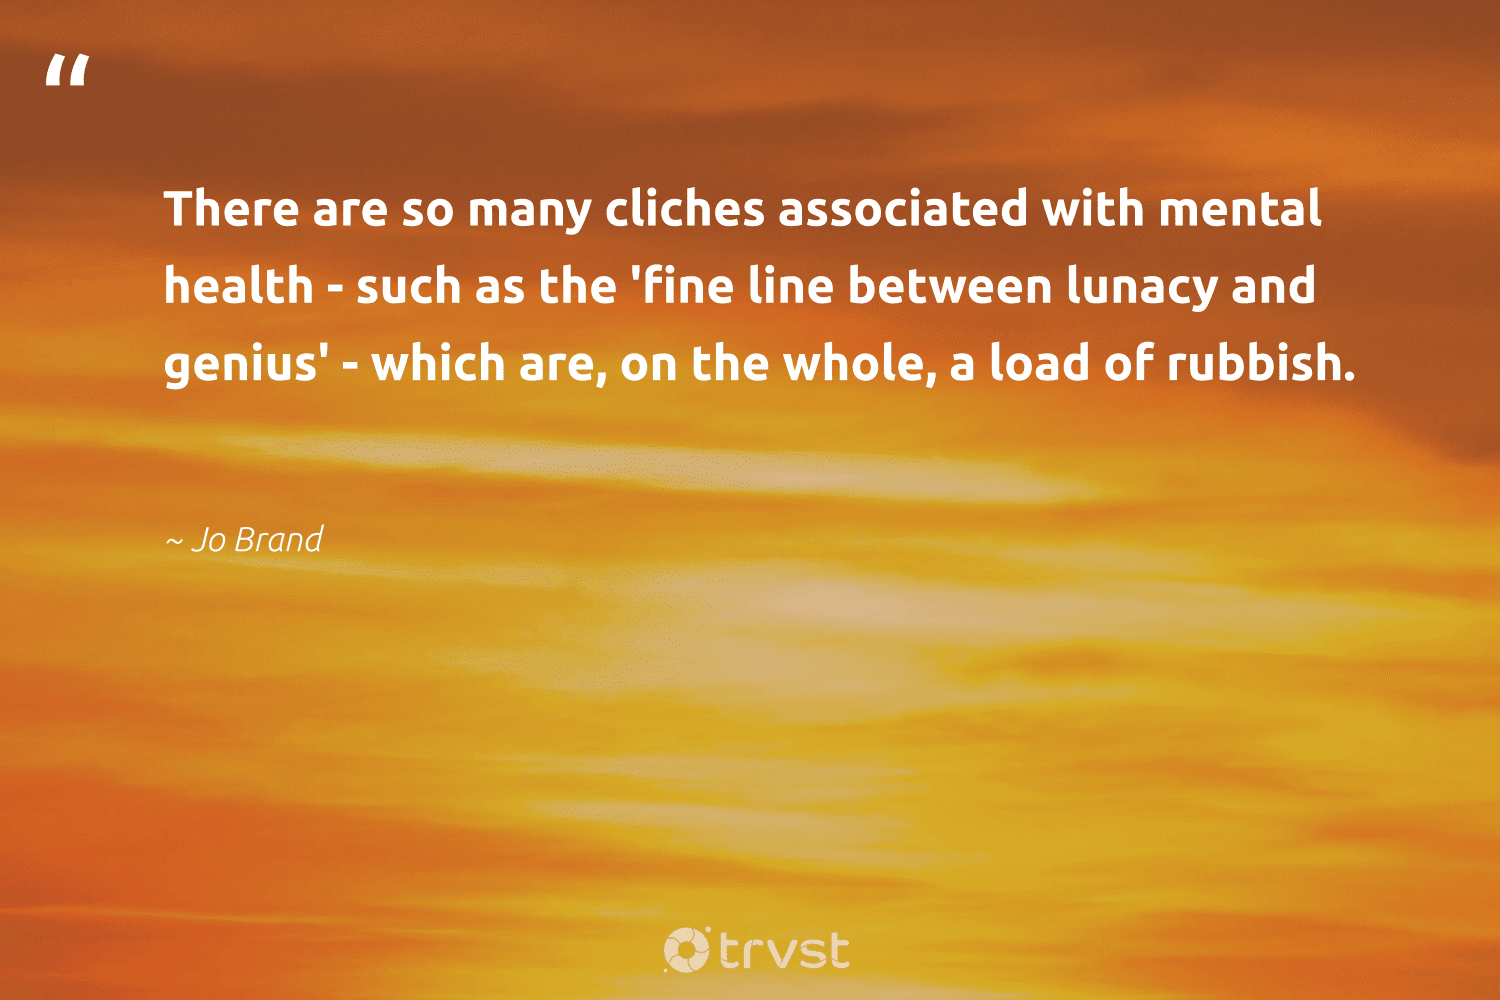 """There are so many cliches associated with mental health - such as the 'fine line between lunacy and genius' - which are, on the whole, a load of rubbish.""  - Jo Brand #trvst #quotes #mentalhealth #health #anxiety #nevergiveup #begreat #planetearthfirst #stampoutthestigma #changemakers #mindset #dotherightthing"